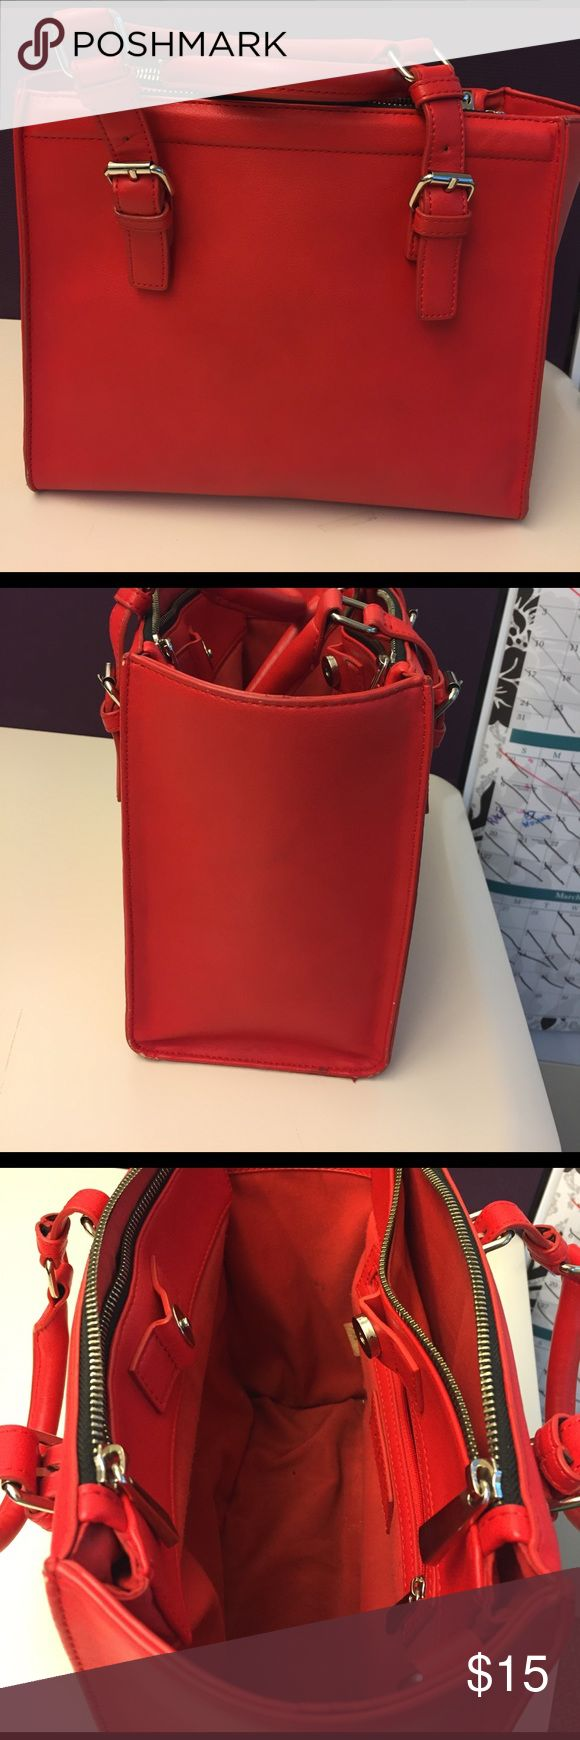 17 best ideas about offer and acceptance financial red express purse closetclearout accepting offers red express purse great for a work bag